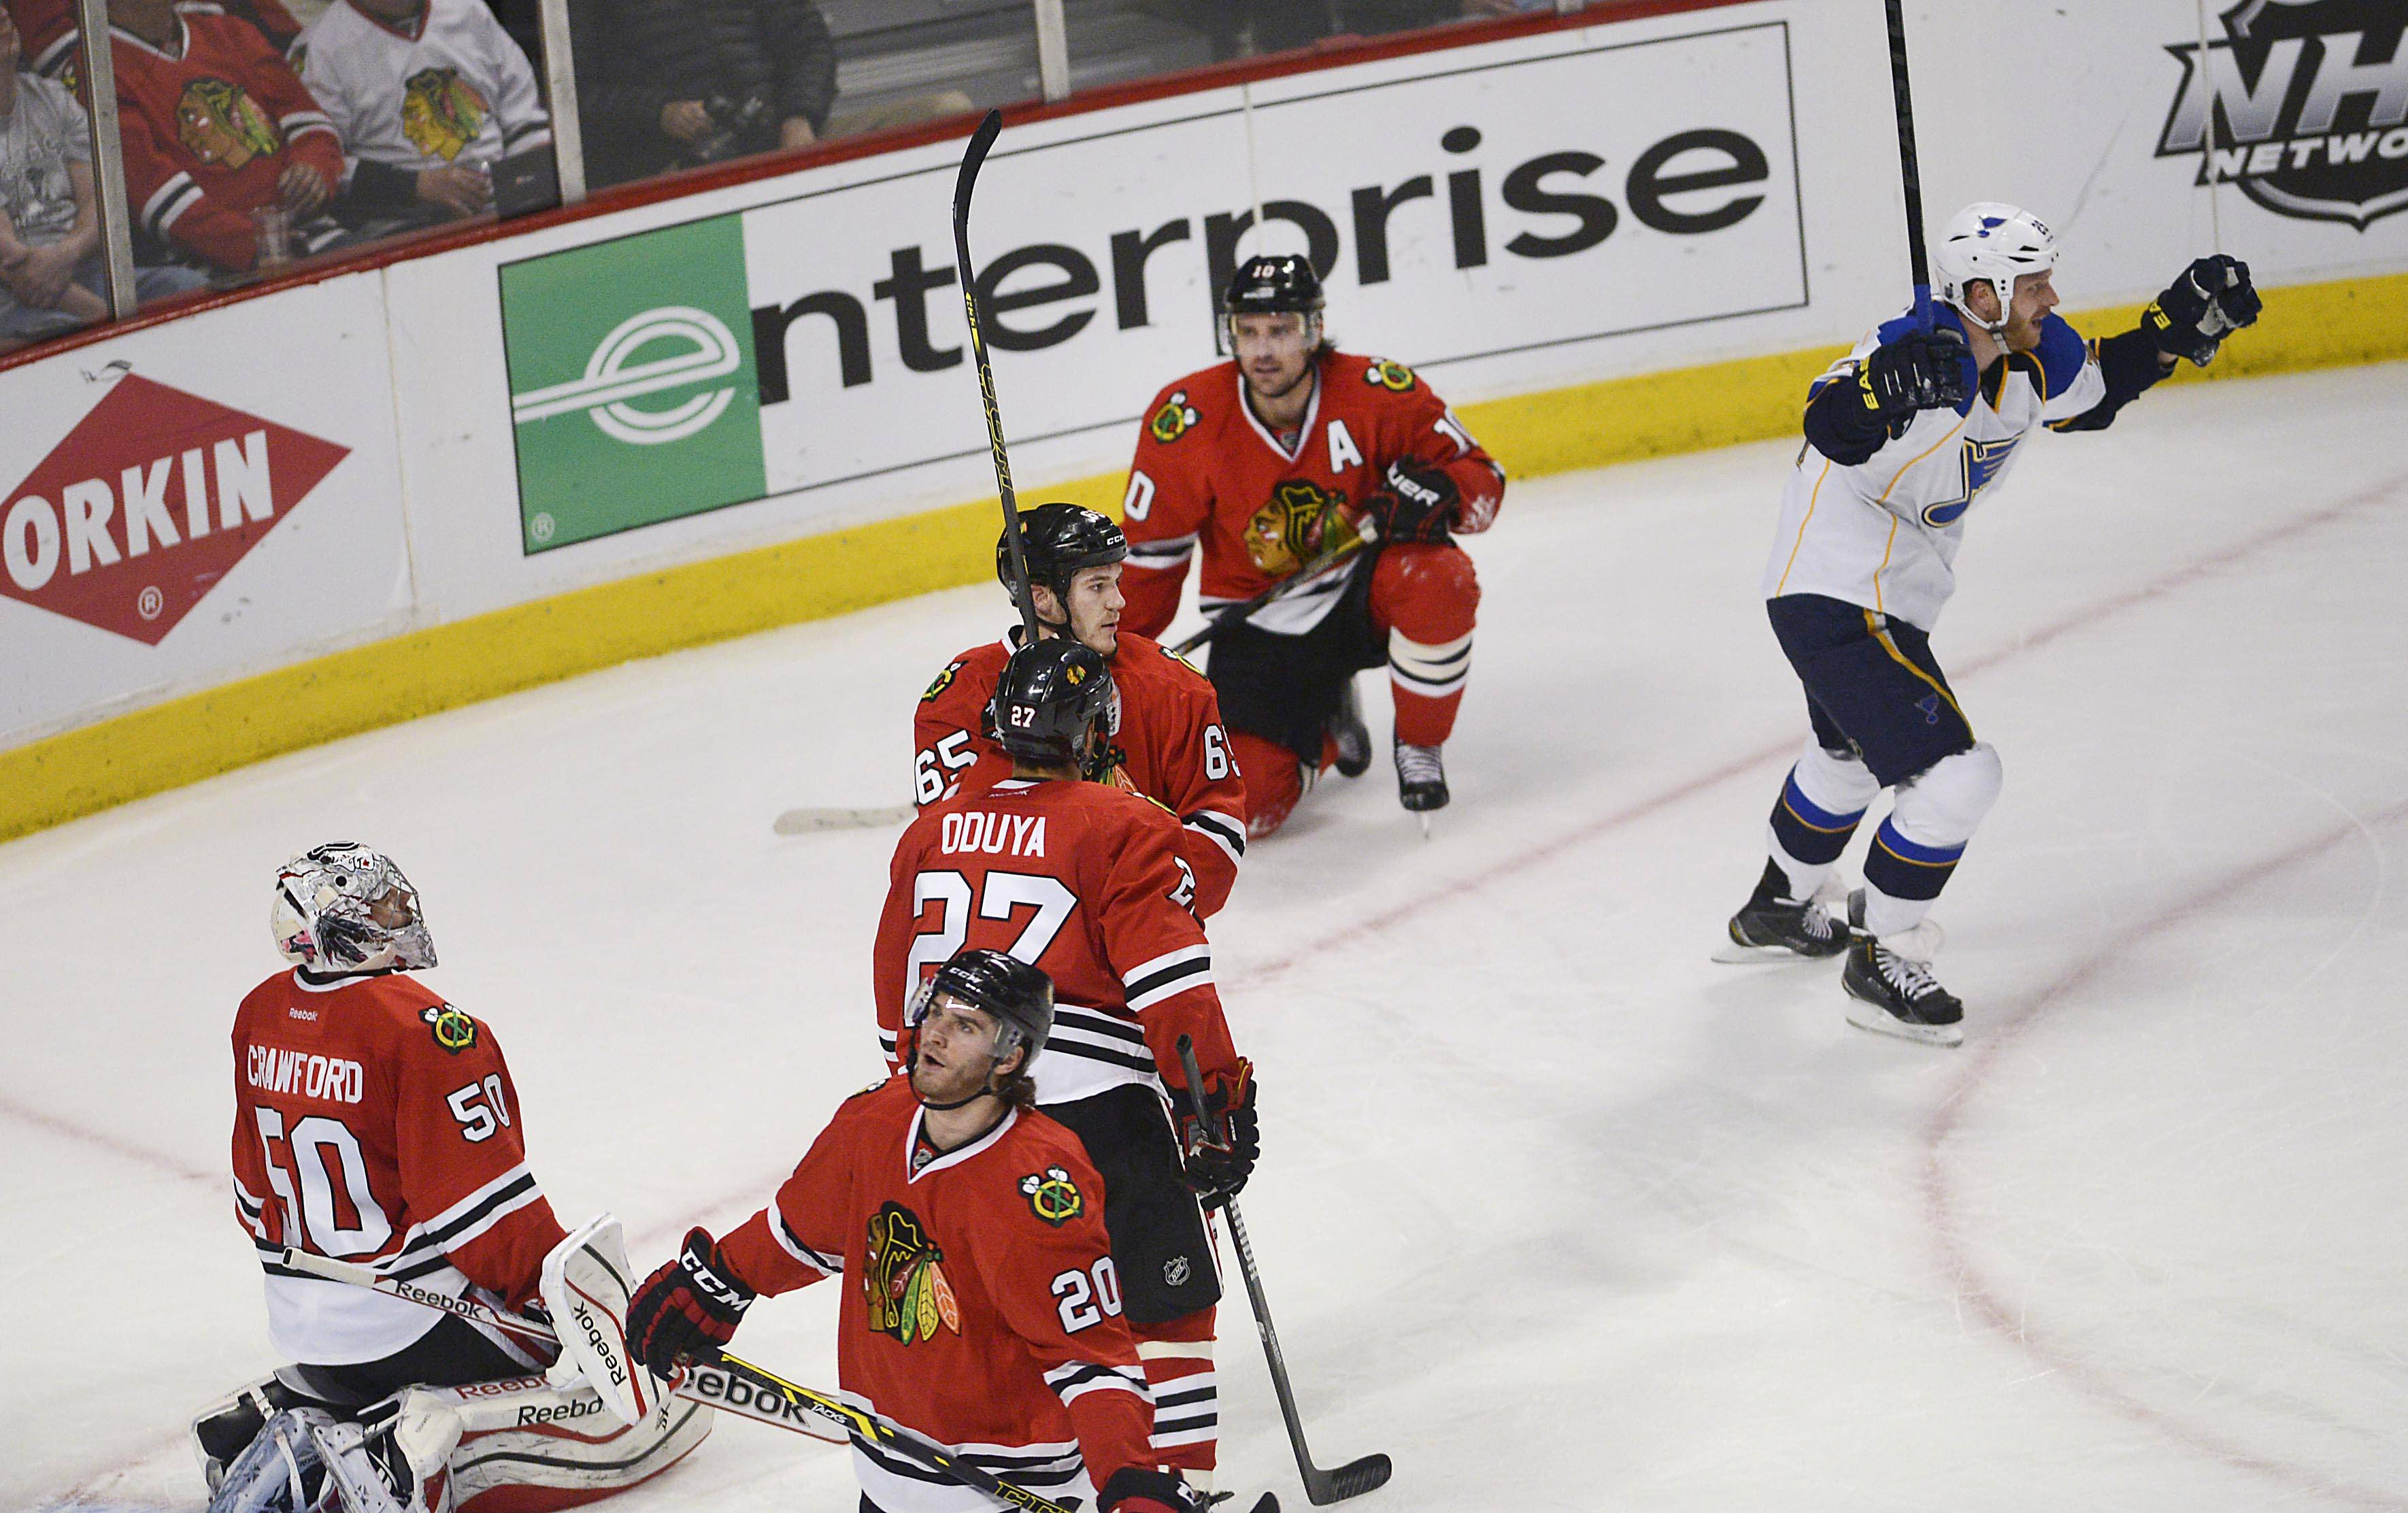 Chicago Blackhawks react as St. Louis Blues defenseman Ian Cole raises his arms as the score is tied late in the second period.